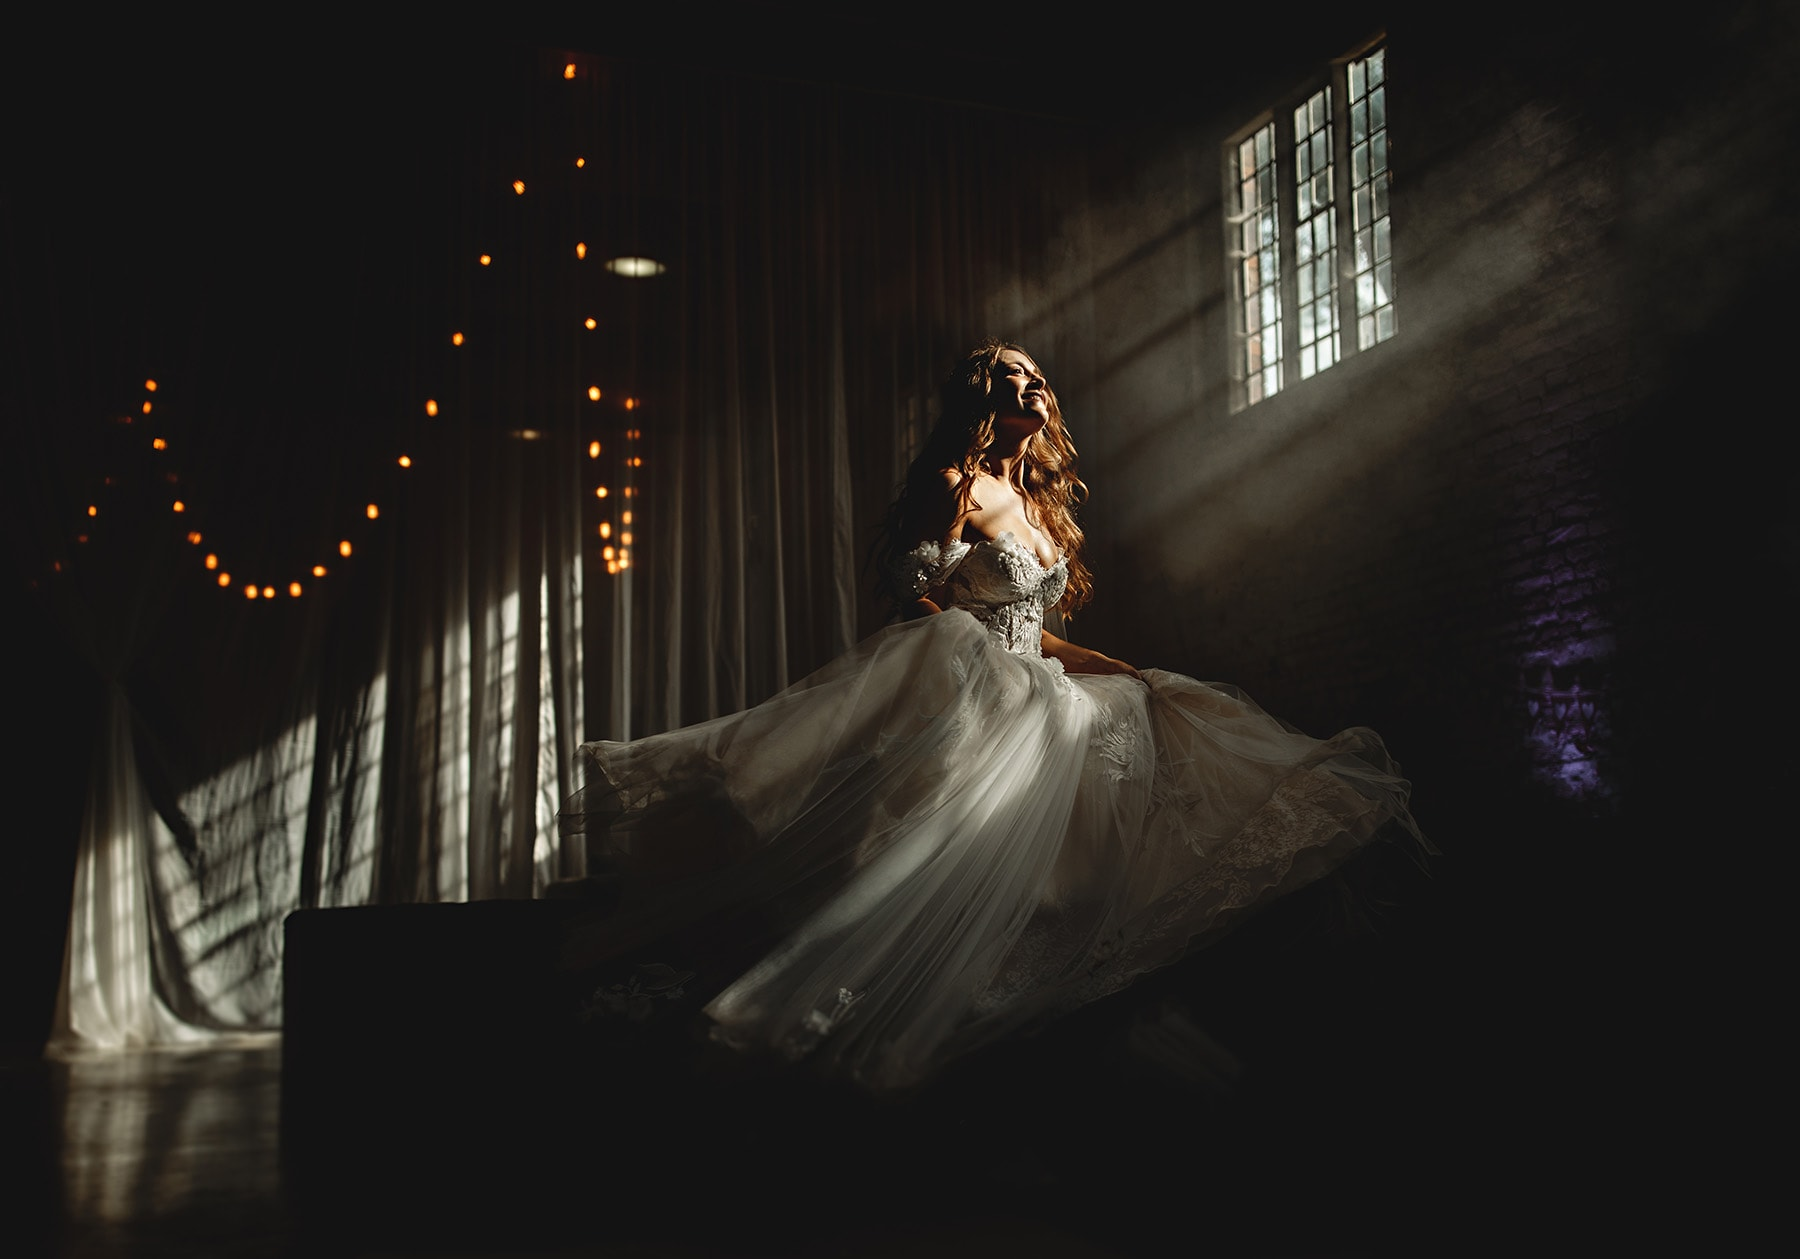 the bride spinning around in her wedding dress inside the riding school at calke abbey